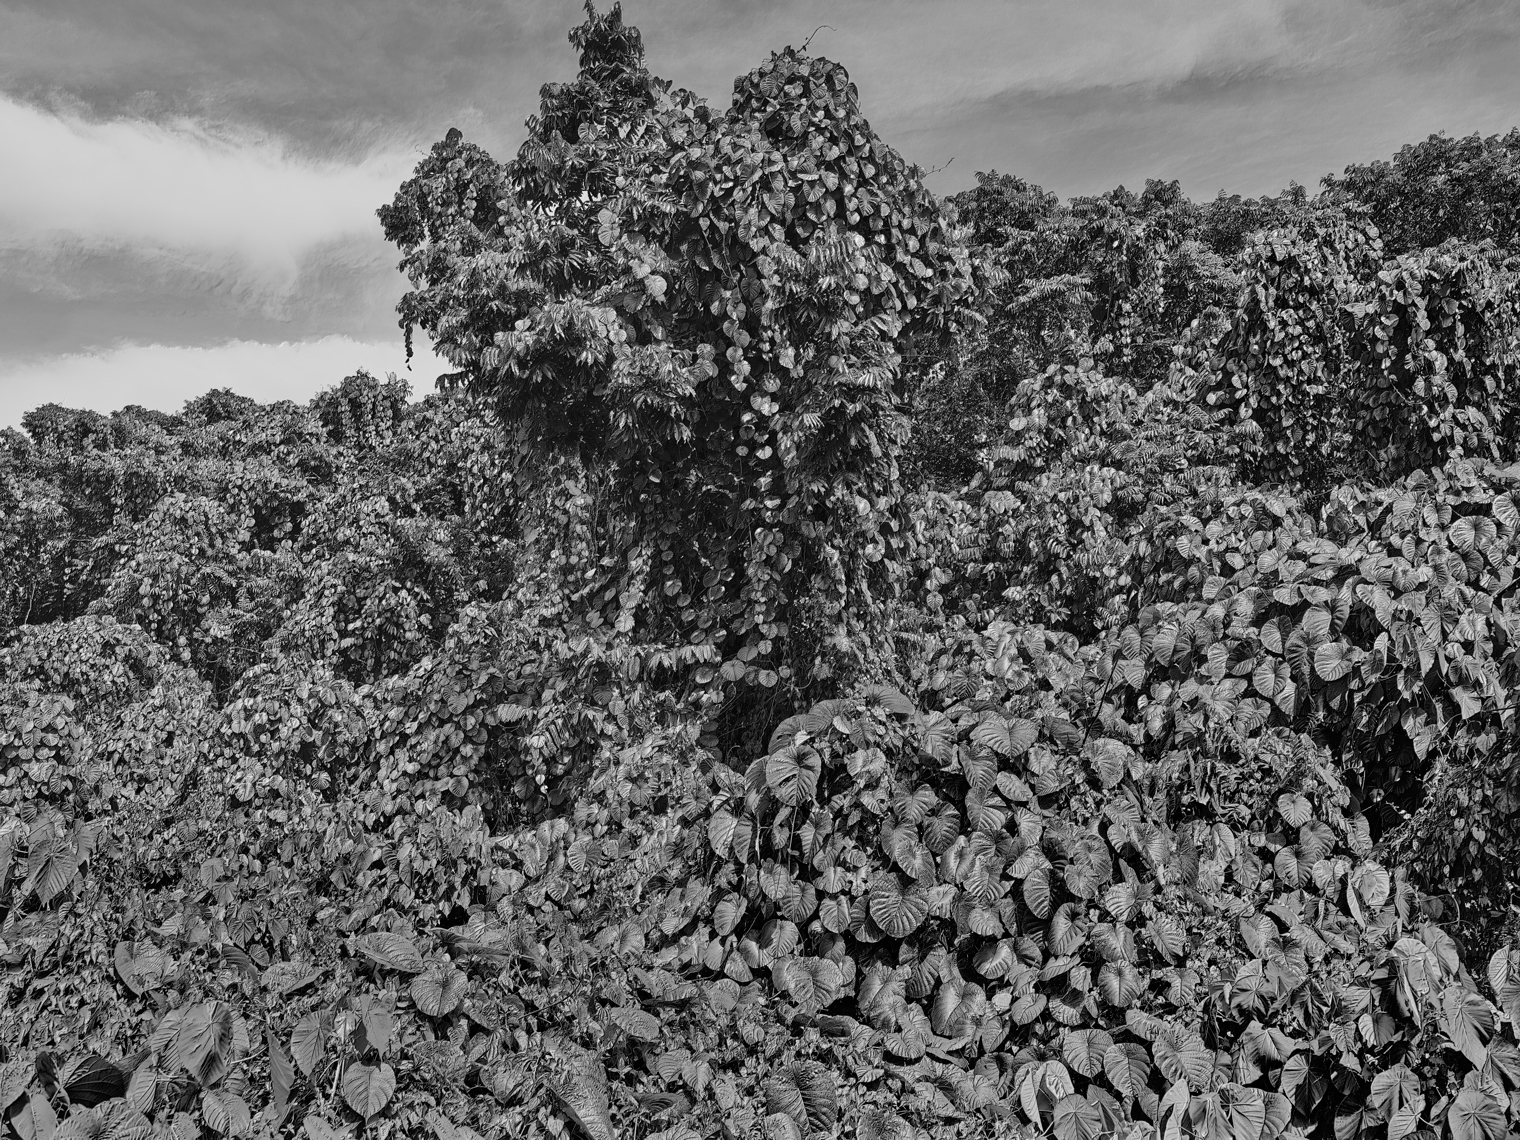 Jon Wyatt Photography - Fault Line XI - A tsunami of vegetation - invasive vines in samoa